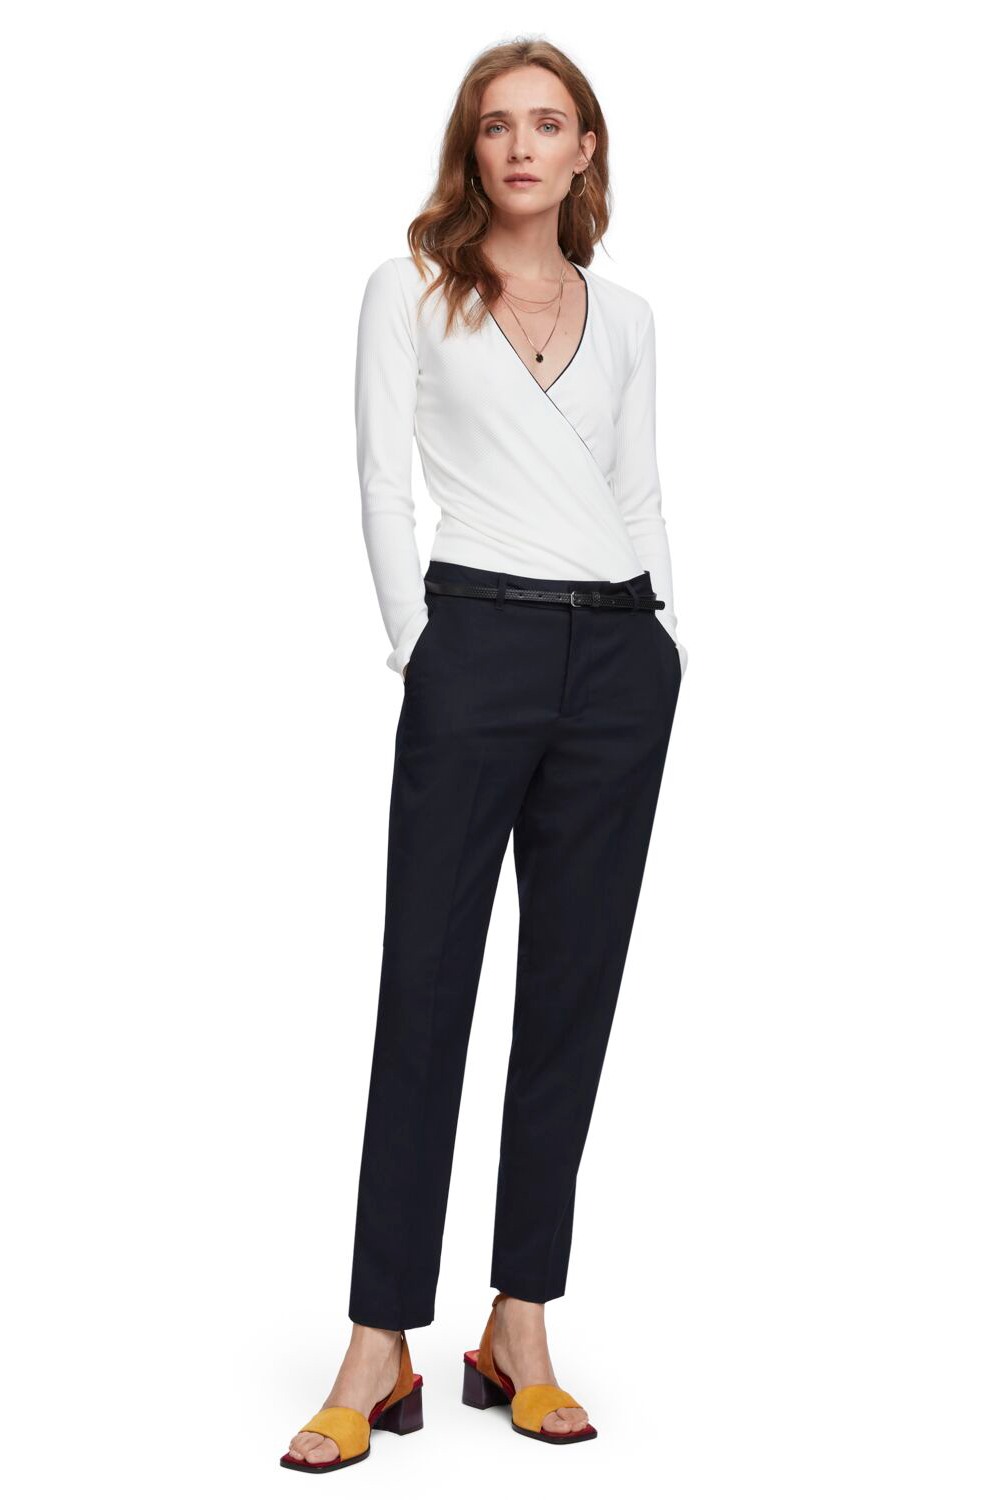 Maison Scotch / Classic Tailored Pants / Night